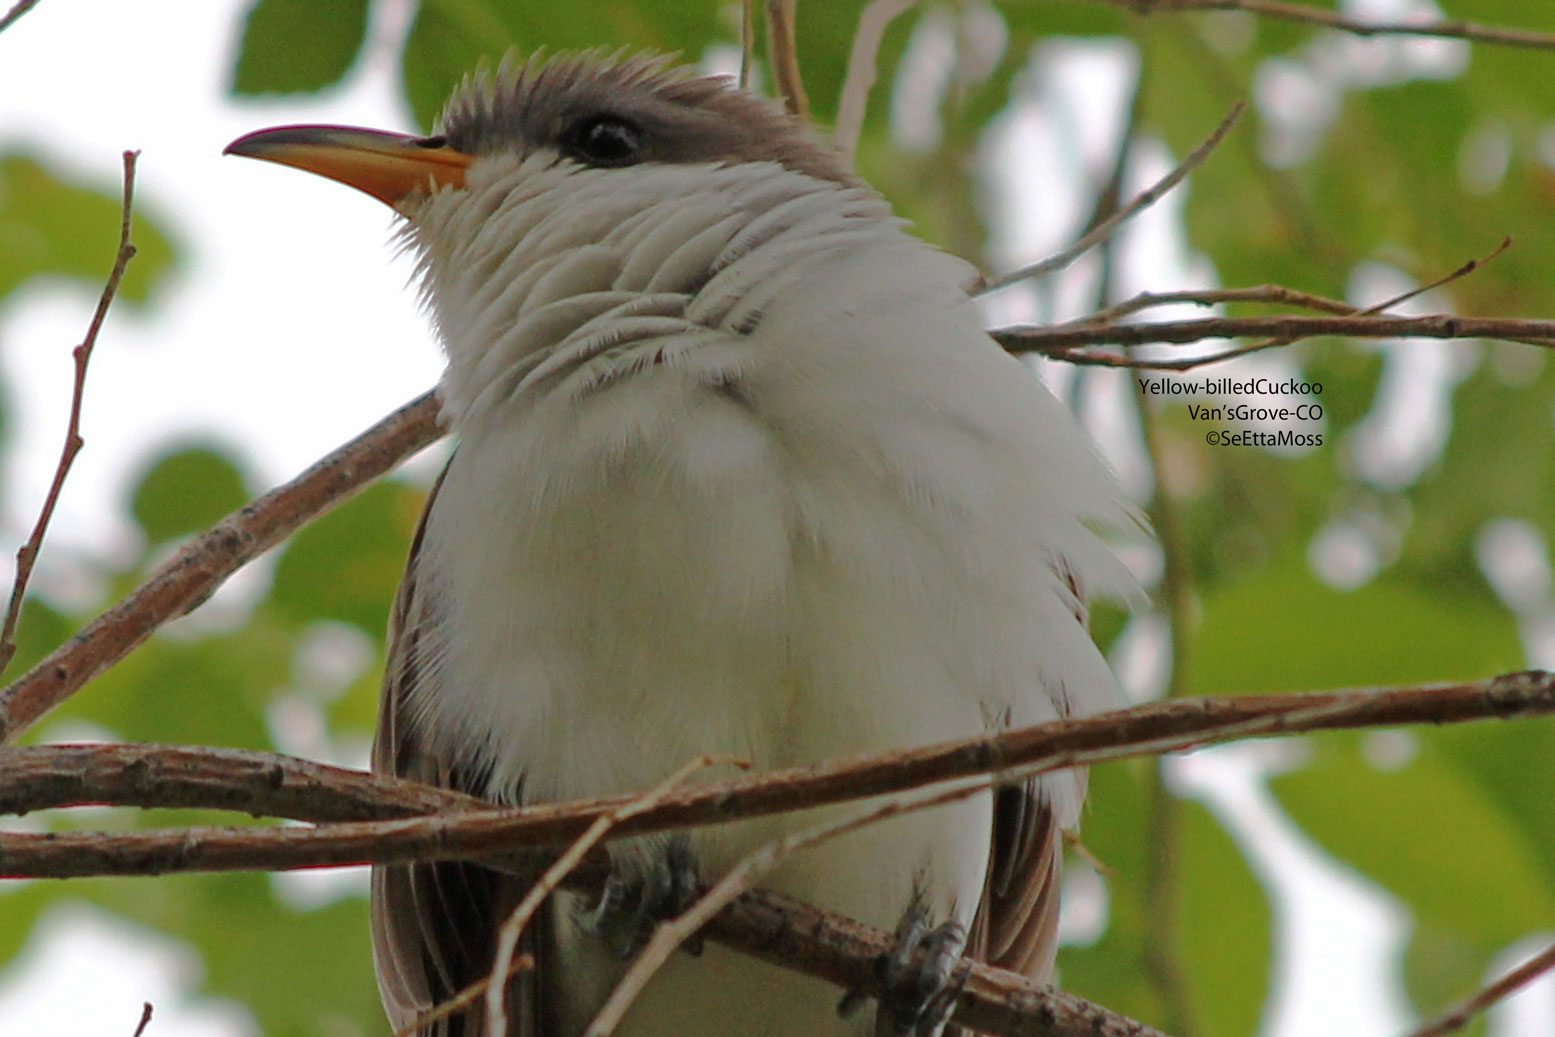 Realize That There Really Are Birds Called Cuckoos We Have Two Species Of Native In North America The Yellow Billed Cuckoo And Black